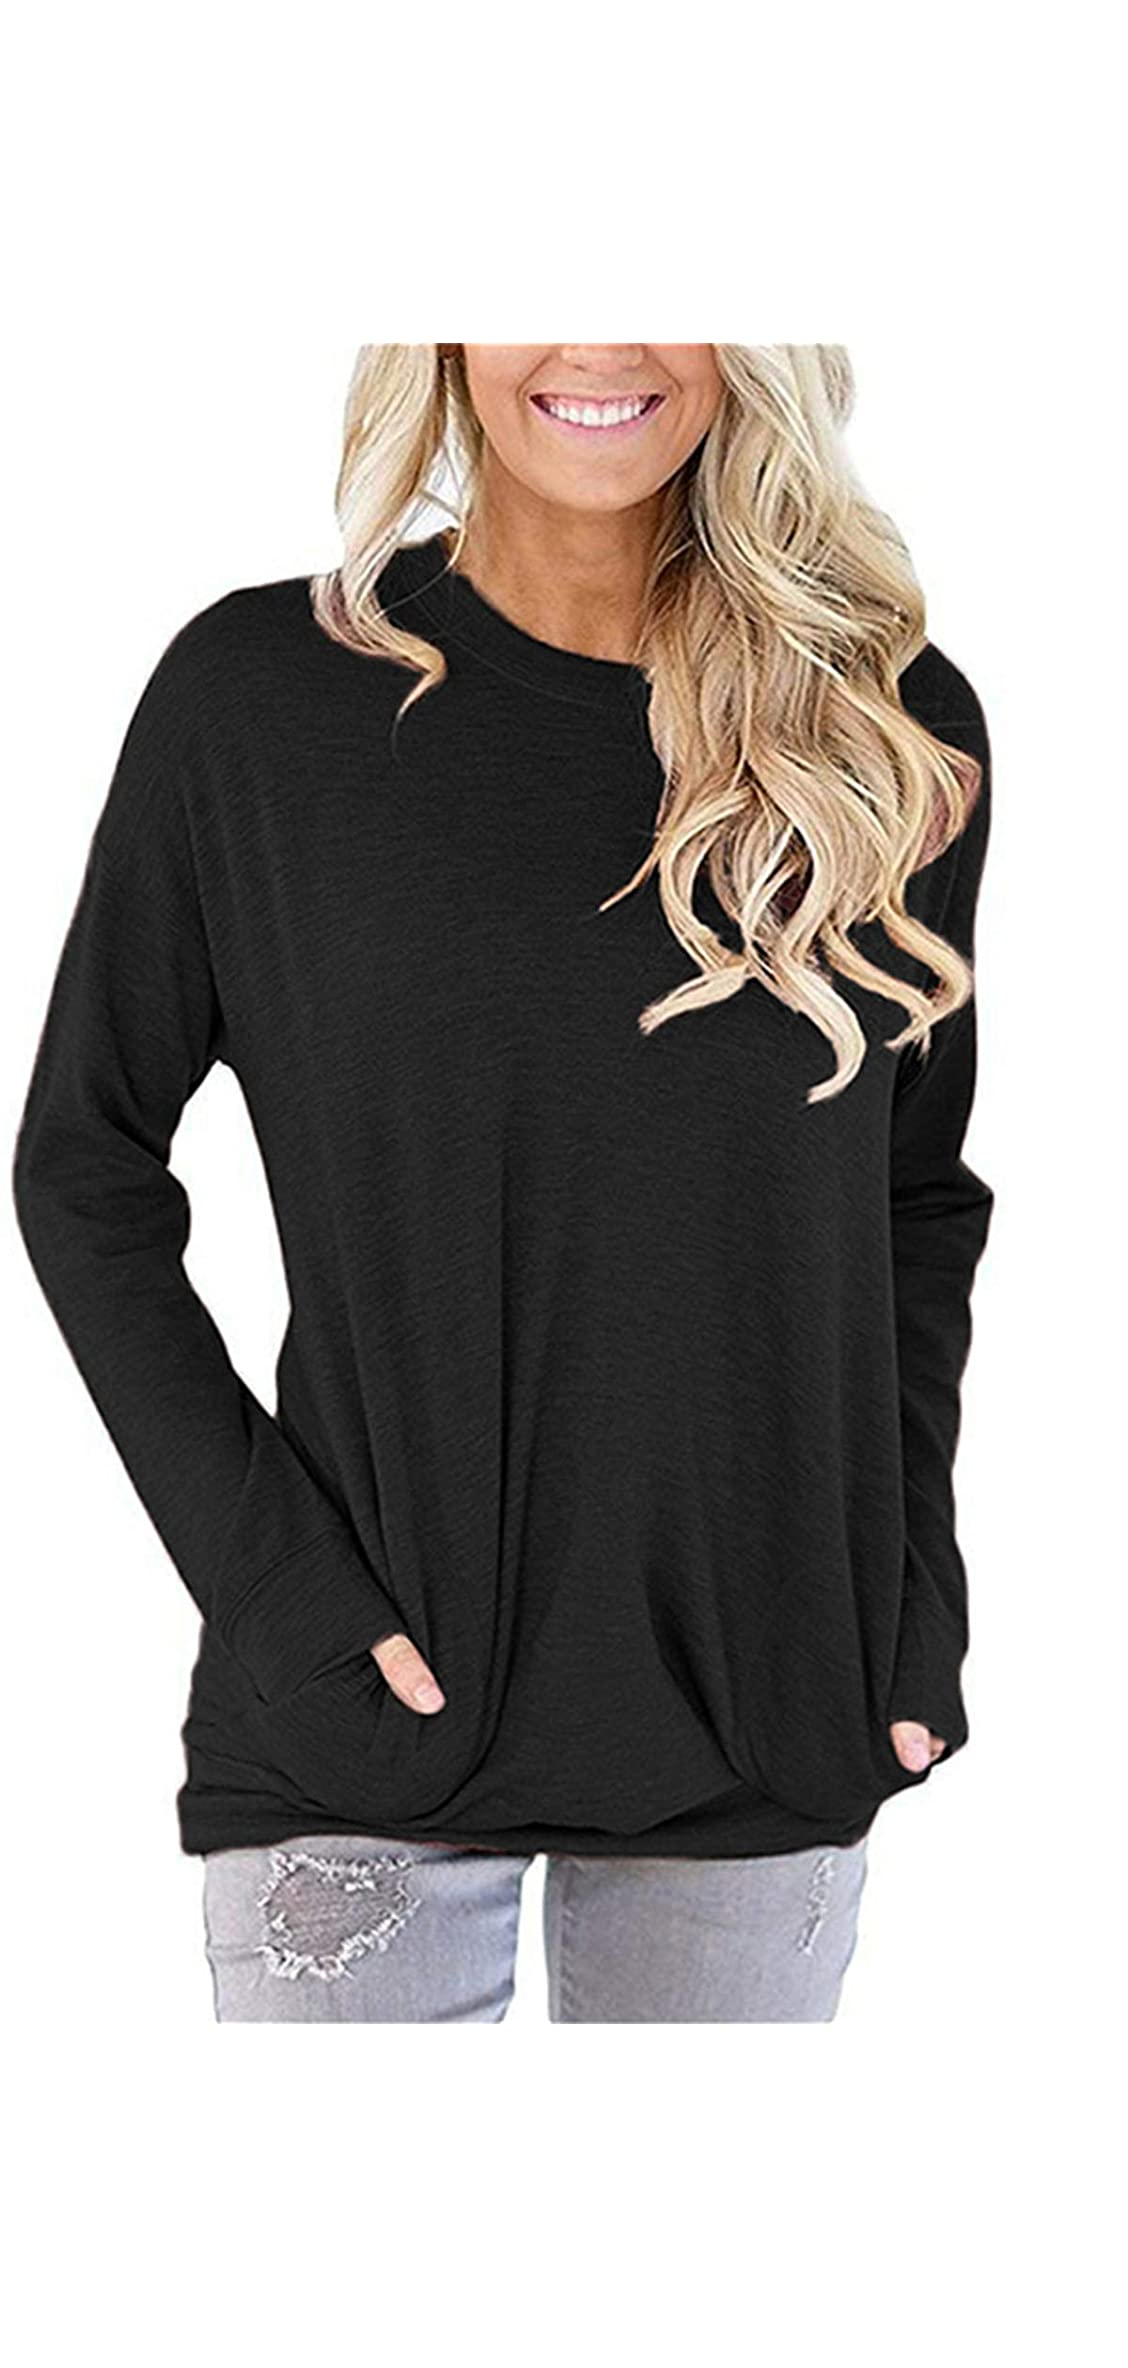 Pocket Shirts For Women Casual Loose Fit Tunic Top